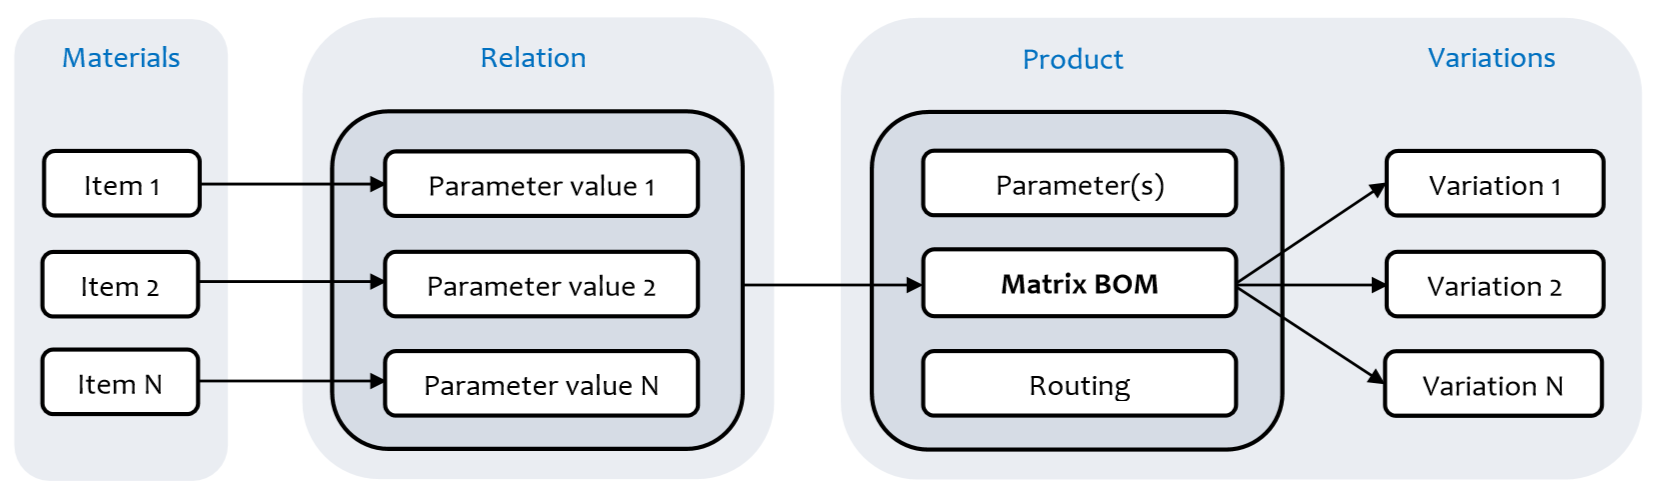 Using parameters and values to define product variations